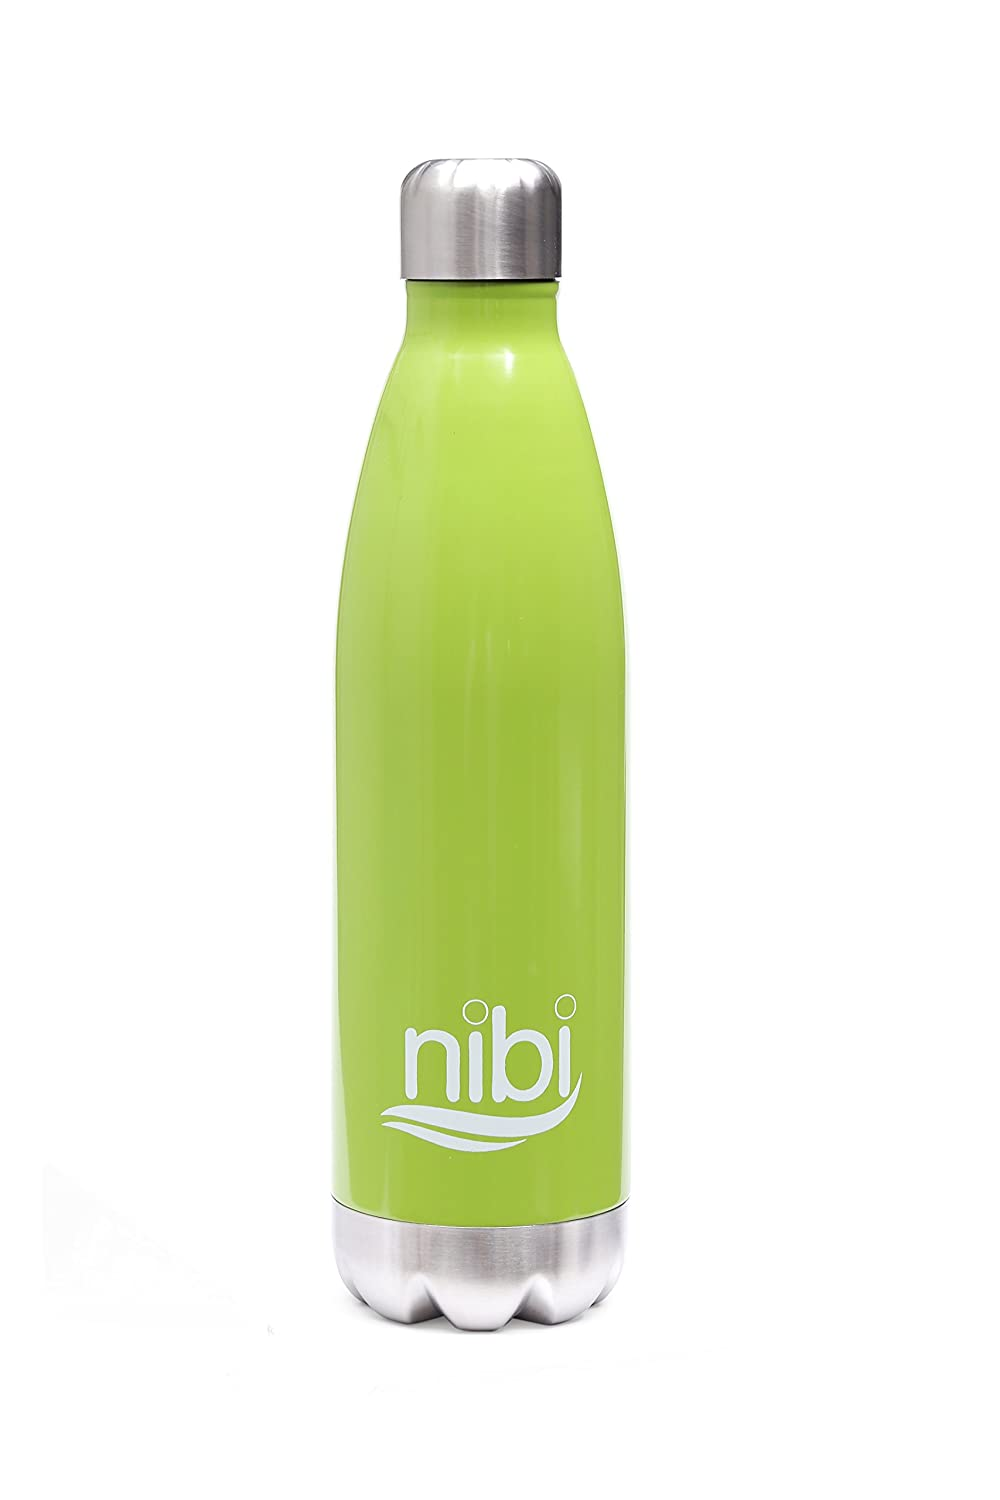 at School 25 Ounces BPA Free Nibi Stainless Steel Water Bottle 25 oz Six From Two Double Walled Vacuum Insulated Water Bottle- Condensation Free at Work /& at Play Keep Your Drink Cold//Hot in Sports